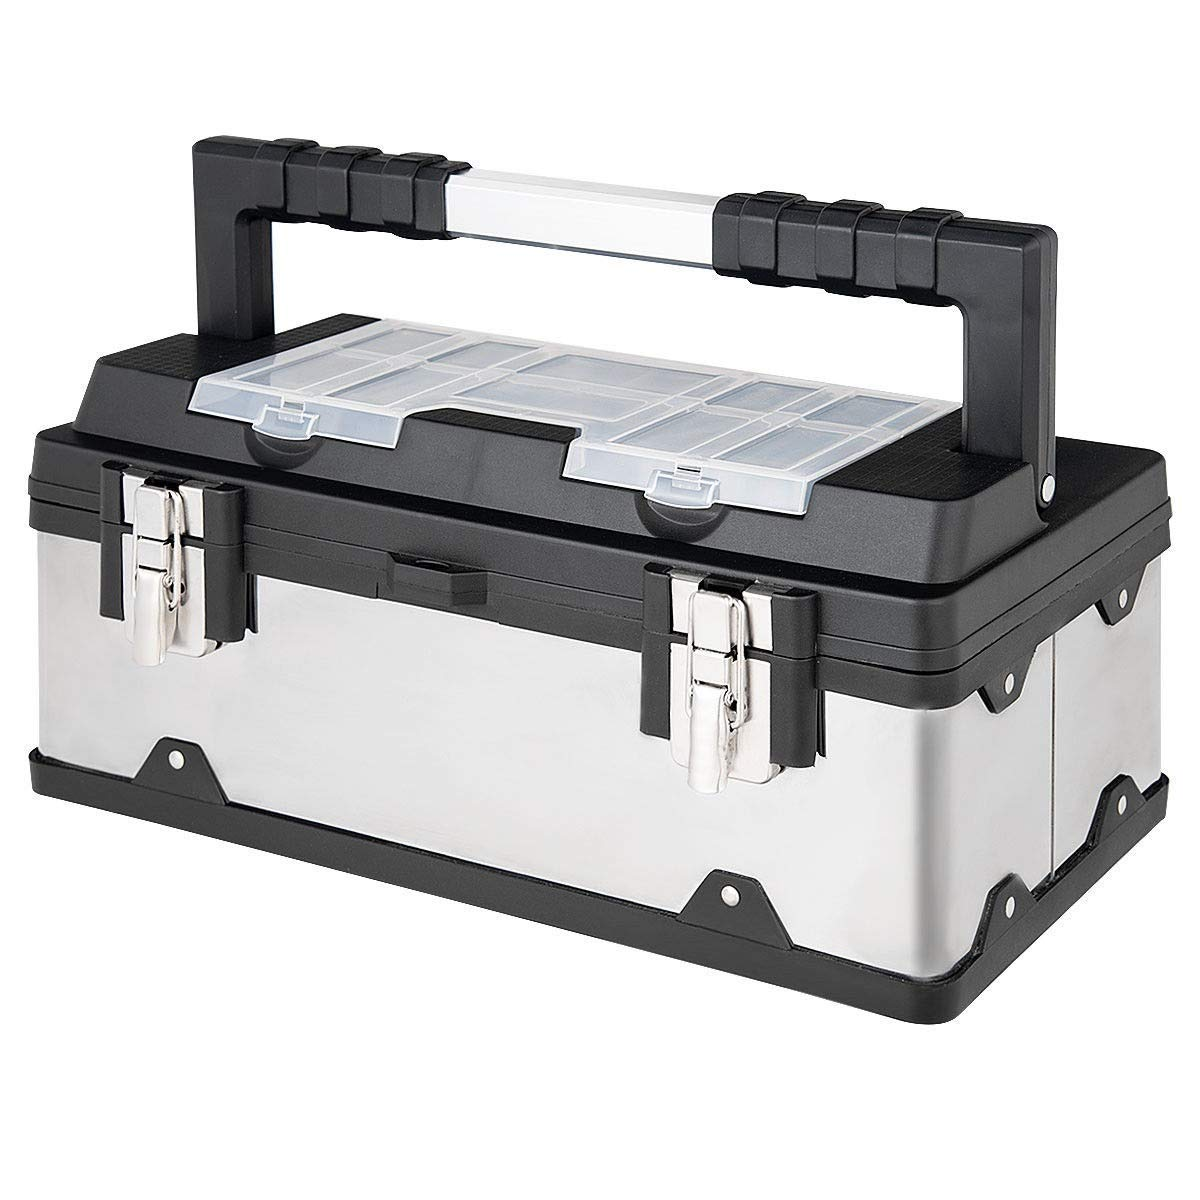 Cypressshop Professional Portable Toolbox Stainless Steel and Plastic Tools Storage Tool Box Organizer 18 Inch With Lid Power Tools Home Workshop